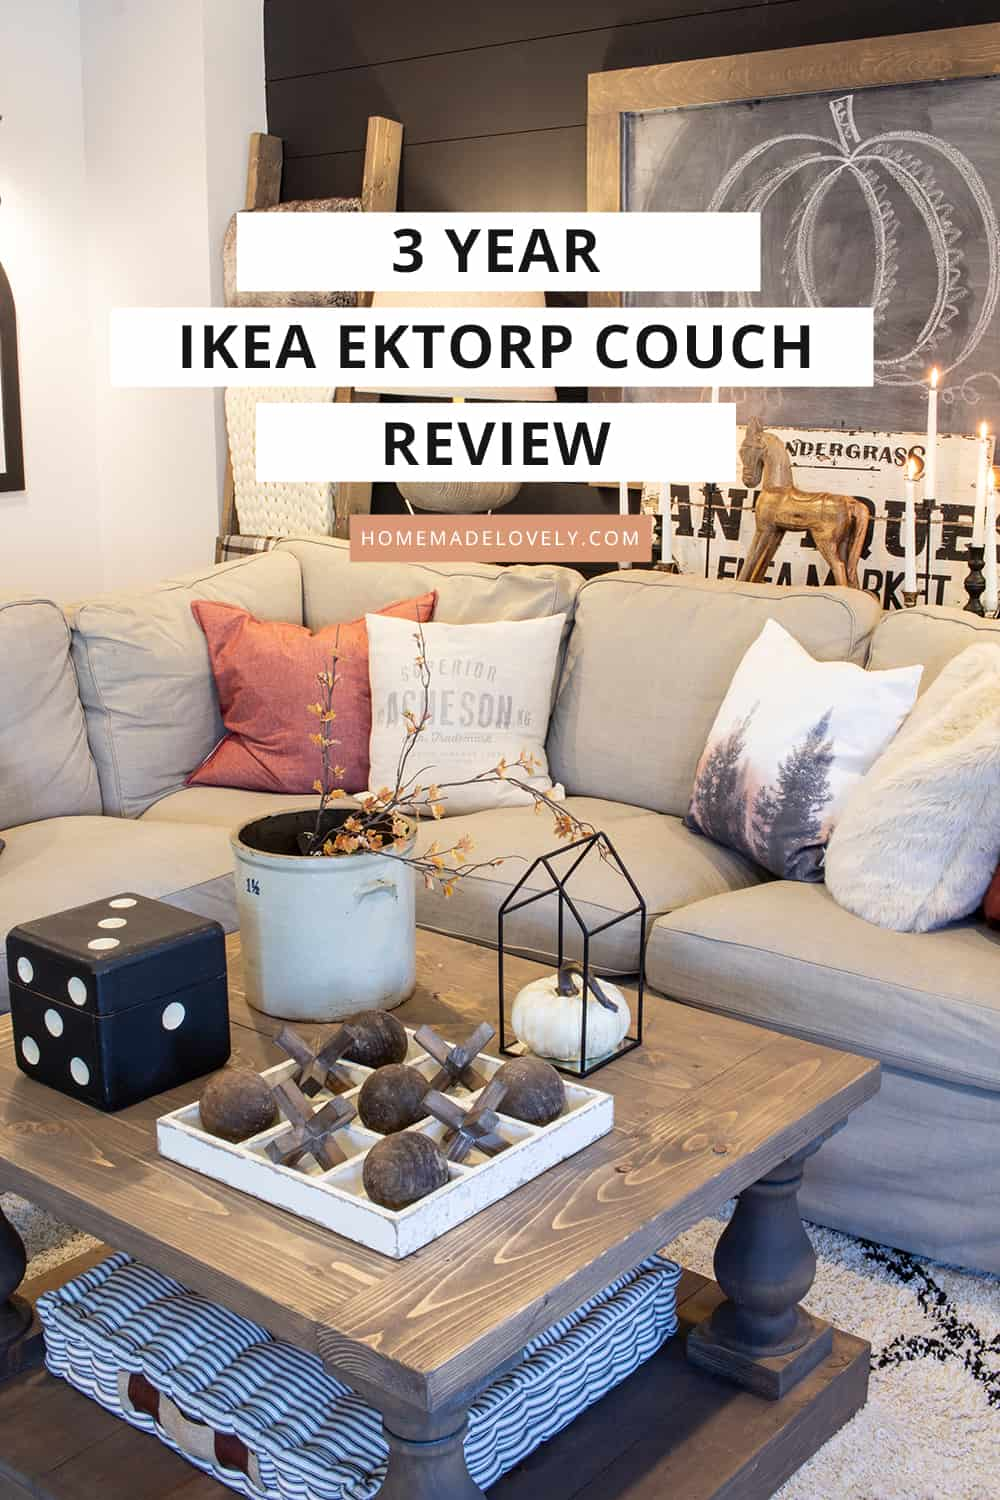 Phenomenal An Honest Review Of The Ikea Ektorp Couch After 3 Years Theyellowbook Wood Chair Design Ideas Theyellowbookinfo